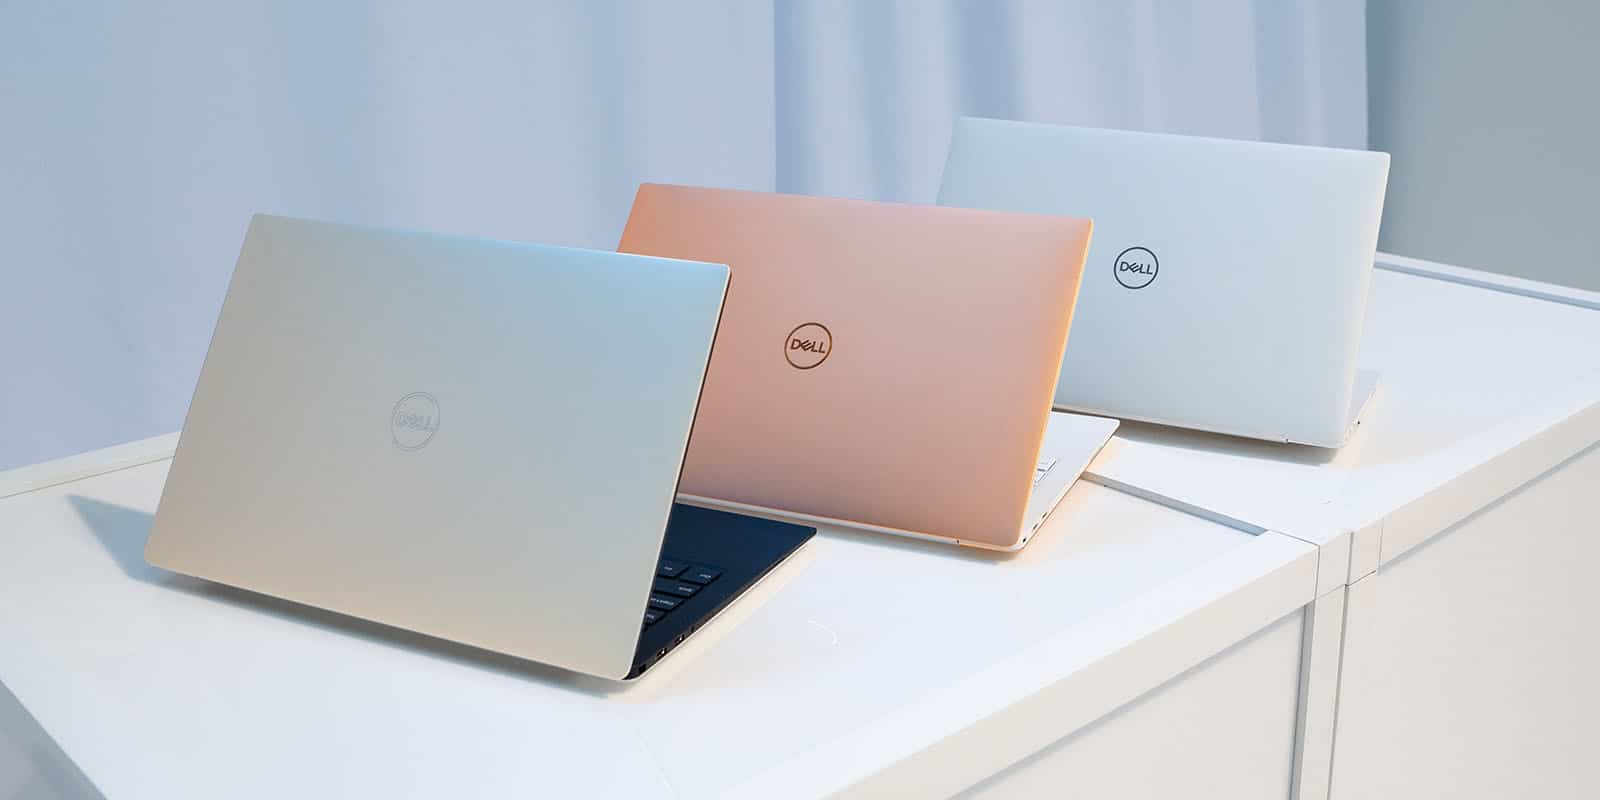 new dell xps 13 9380 vs xps 13 9370